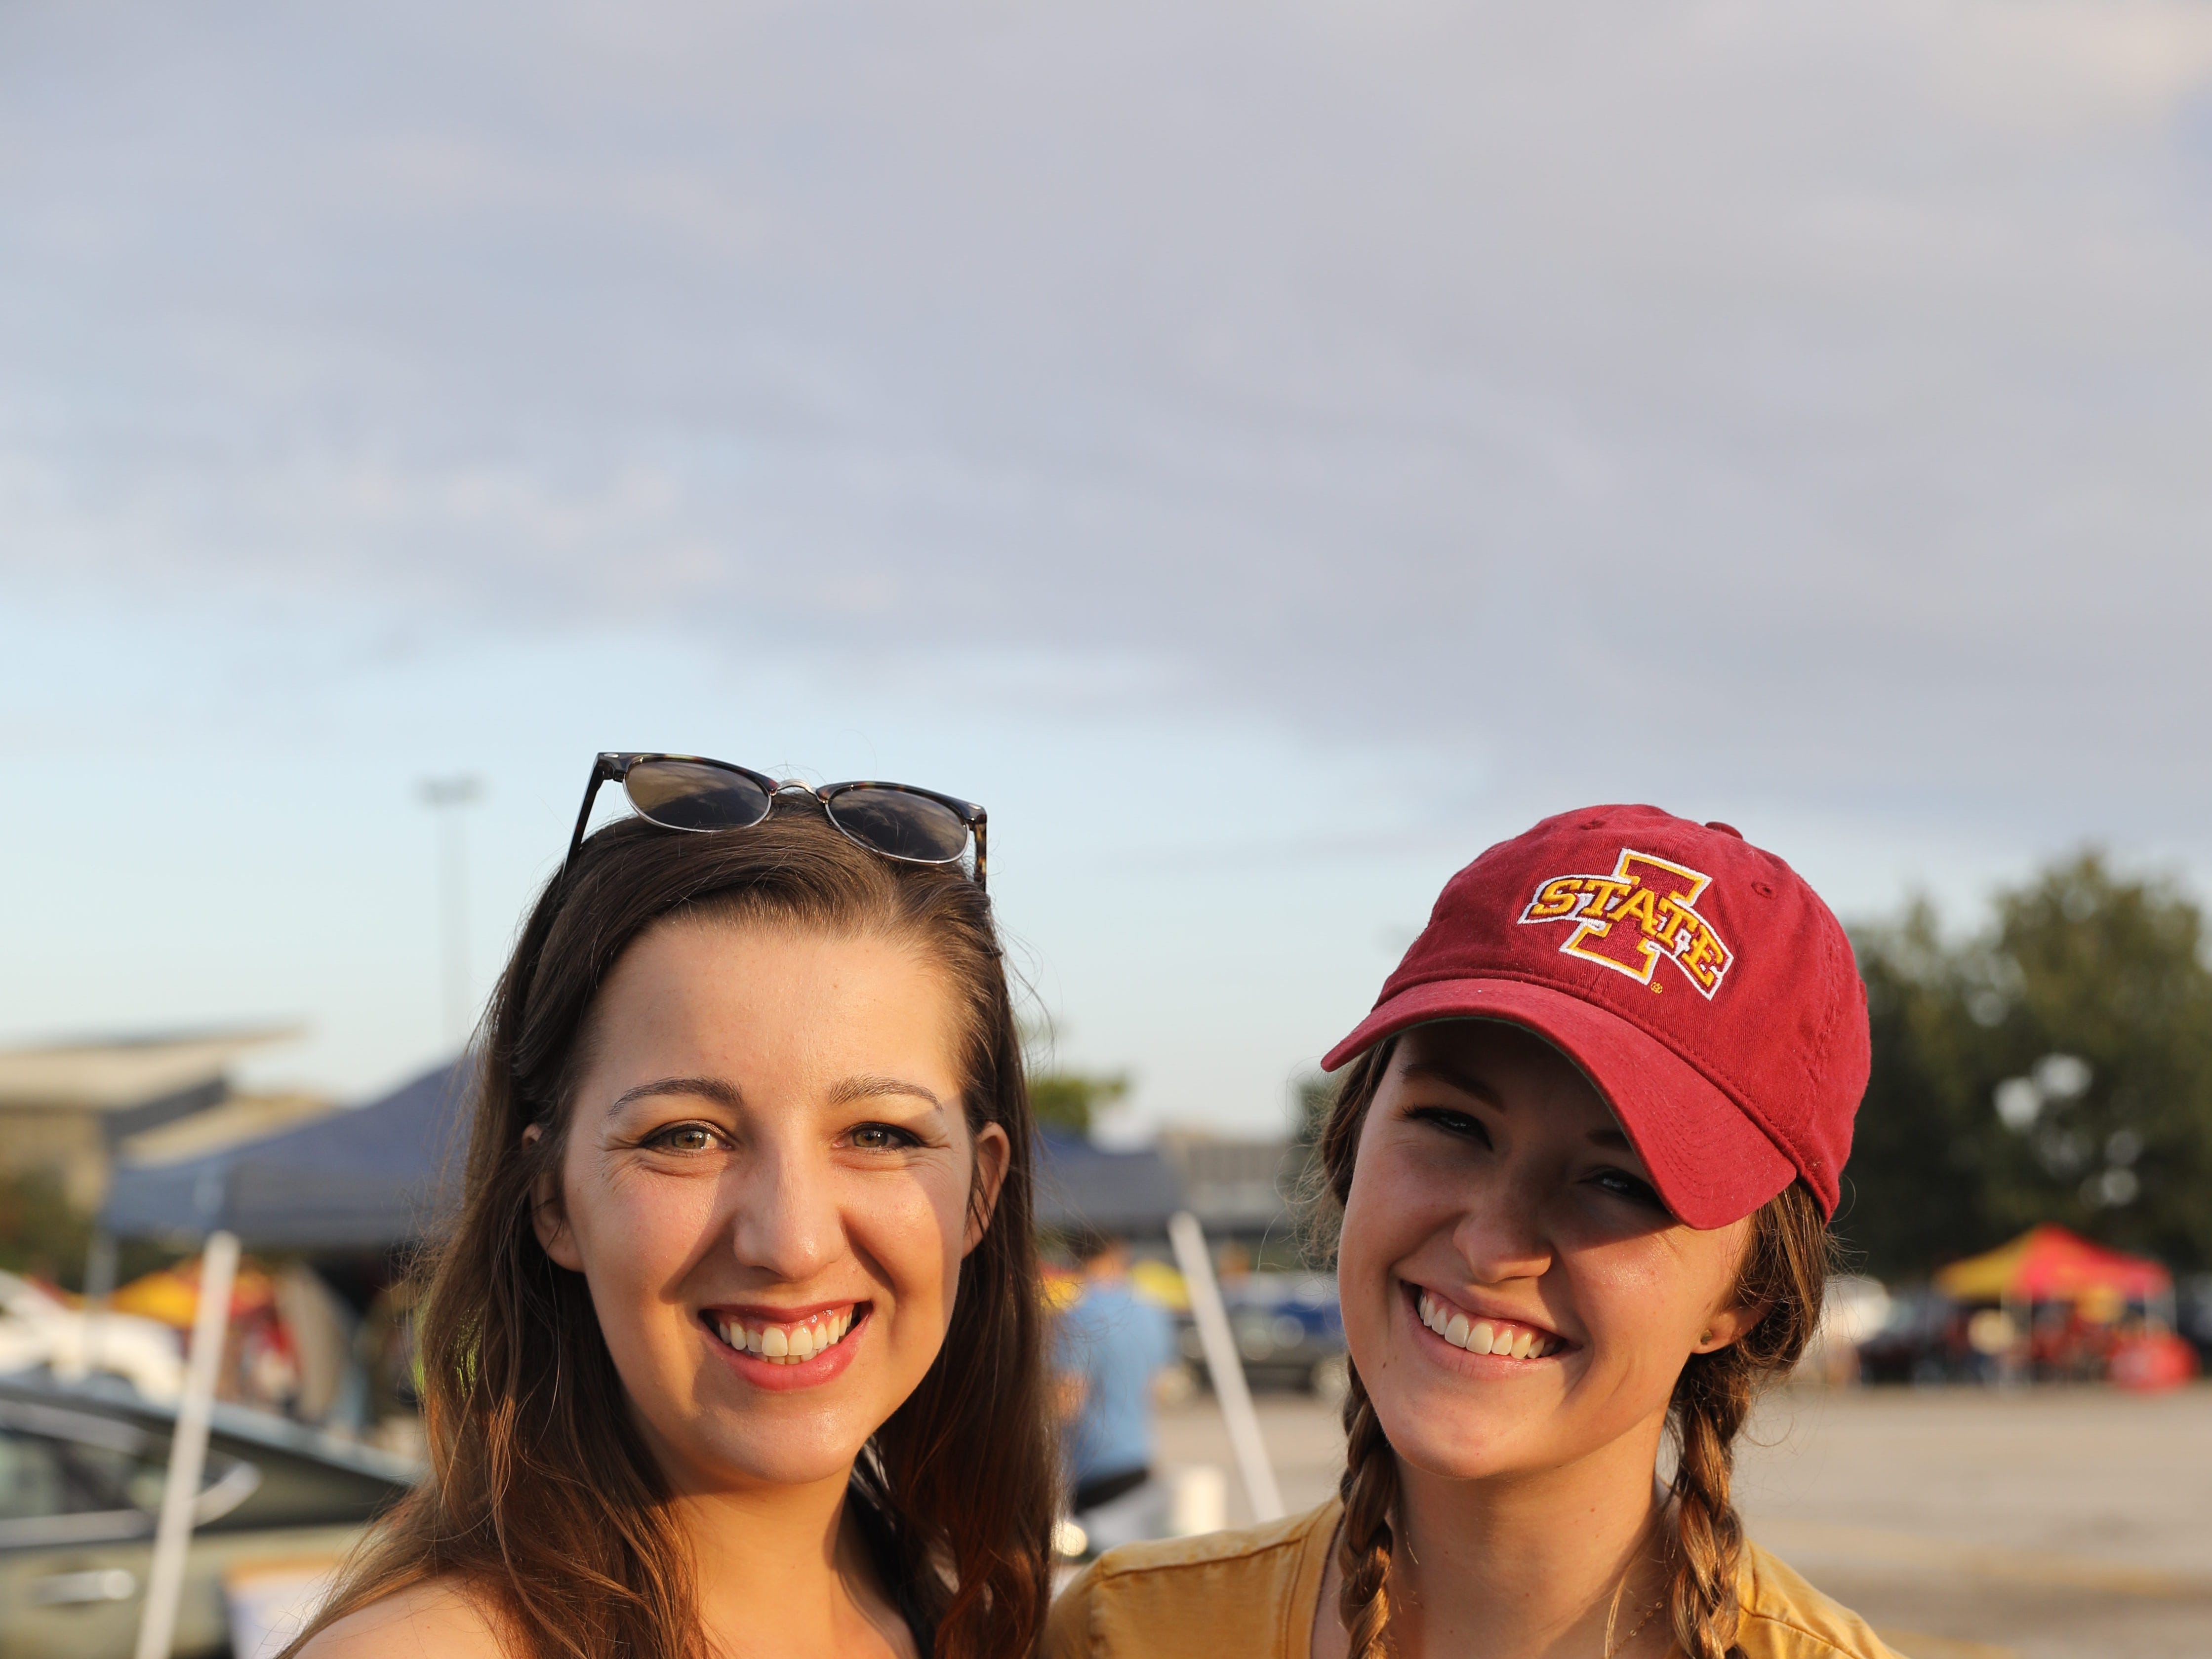 Emily Sherman, 24, (left) and Paige Naschke, 27, both of Minneapolis, Saturday, Sept. 15, 2018, before the Iowa State football game against Oklahoma in Ames.